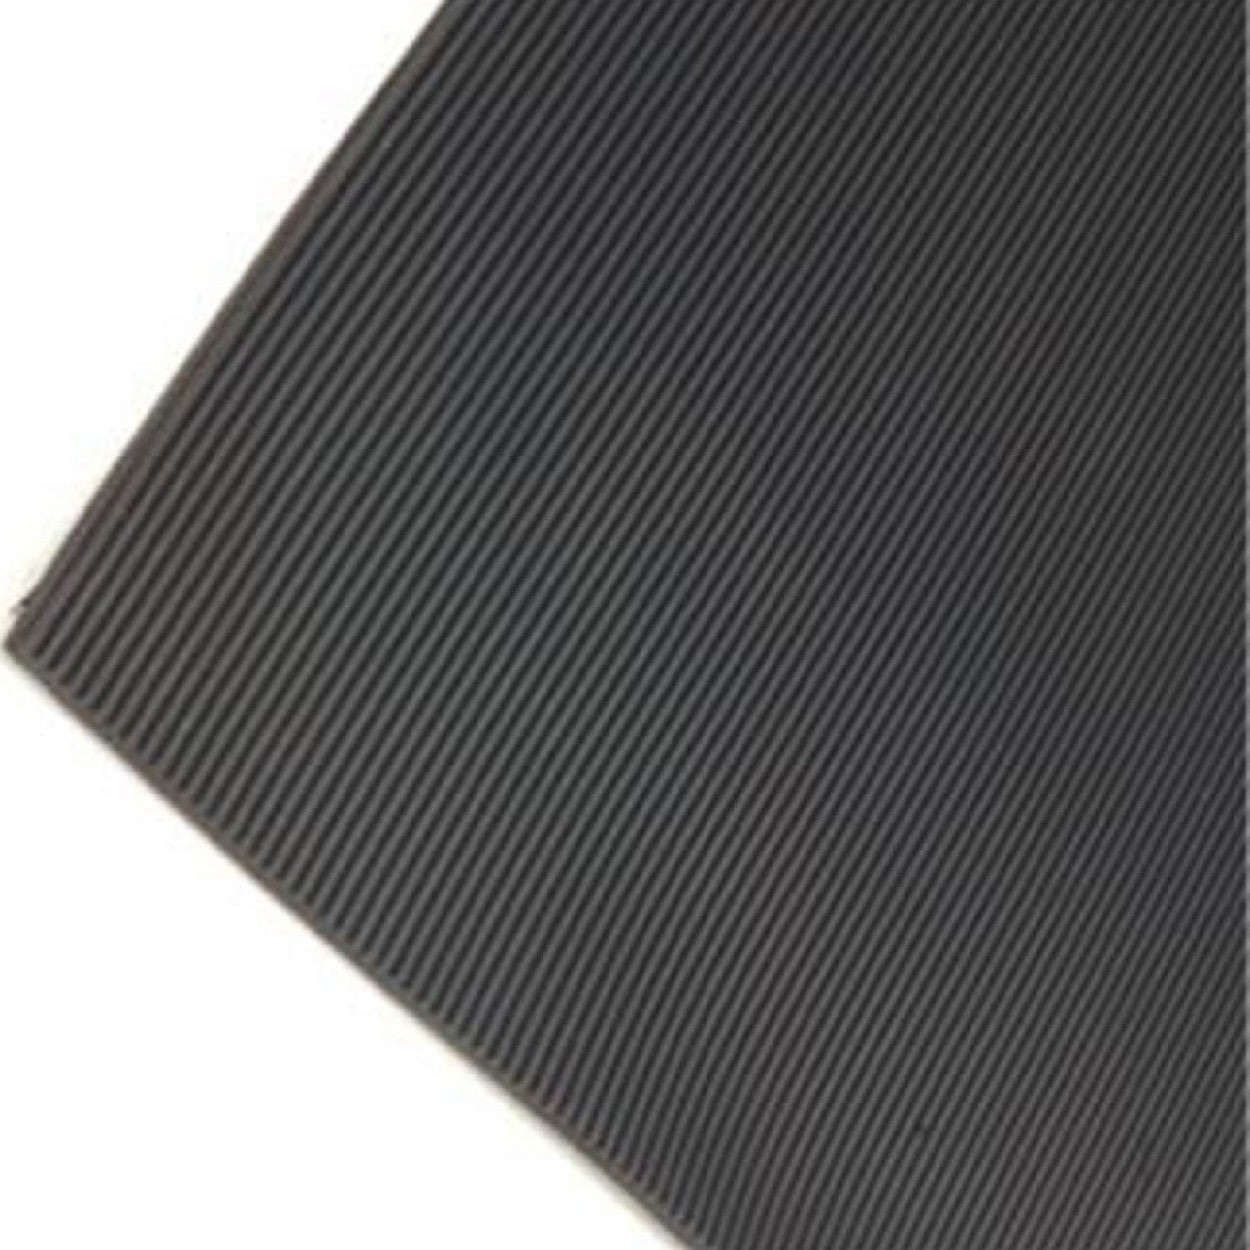 size for material boat denver rolls of inc inspirations rubber frightening flooring outdoorrubber full liquid promo photo reviews rubberg garage gyms floor labs tiles code